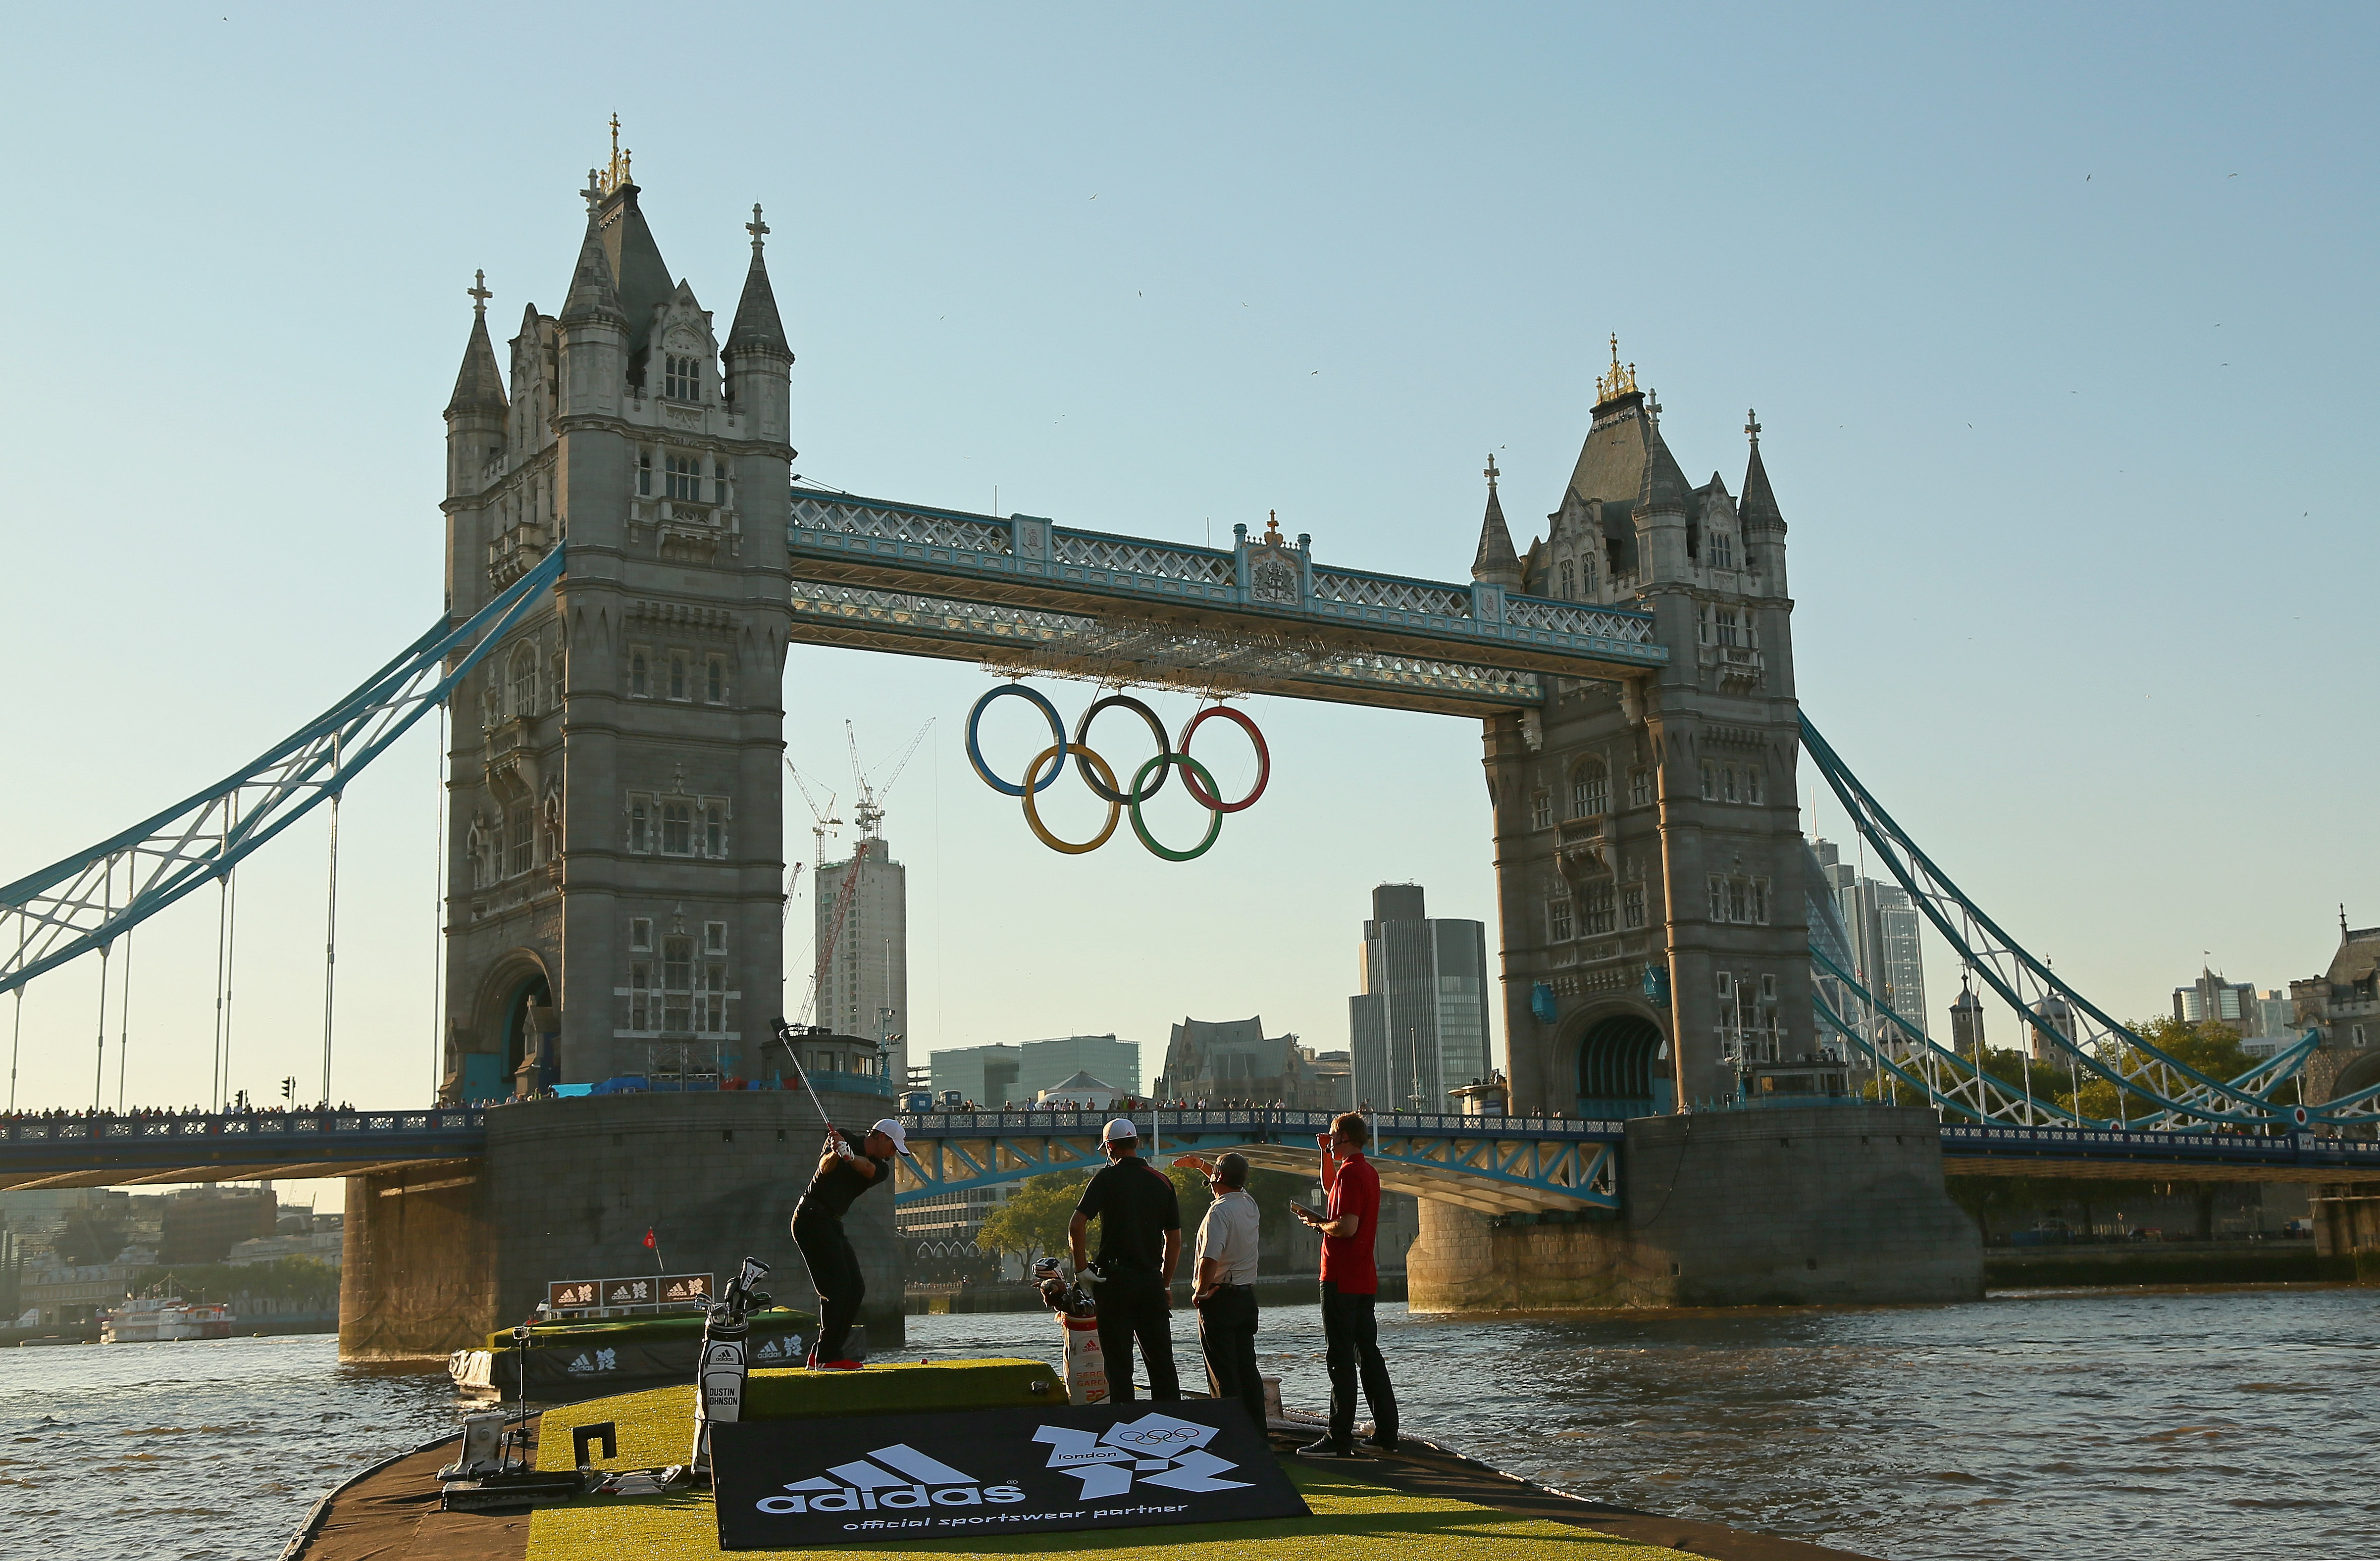 LONDON, ENGLAND - JULY 23:  Sergio Garcia of Spain hits balls into the Thames River during the Adidas Paints the Town Red Adidas London Golf Challenge at the Tower Bridge on July 23, 2012 in London, England.  (Photo by Mike Ehrmann/Getty Images)